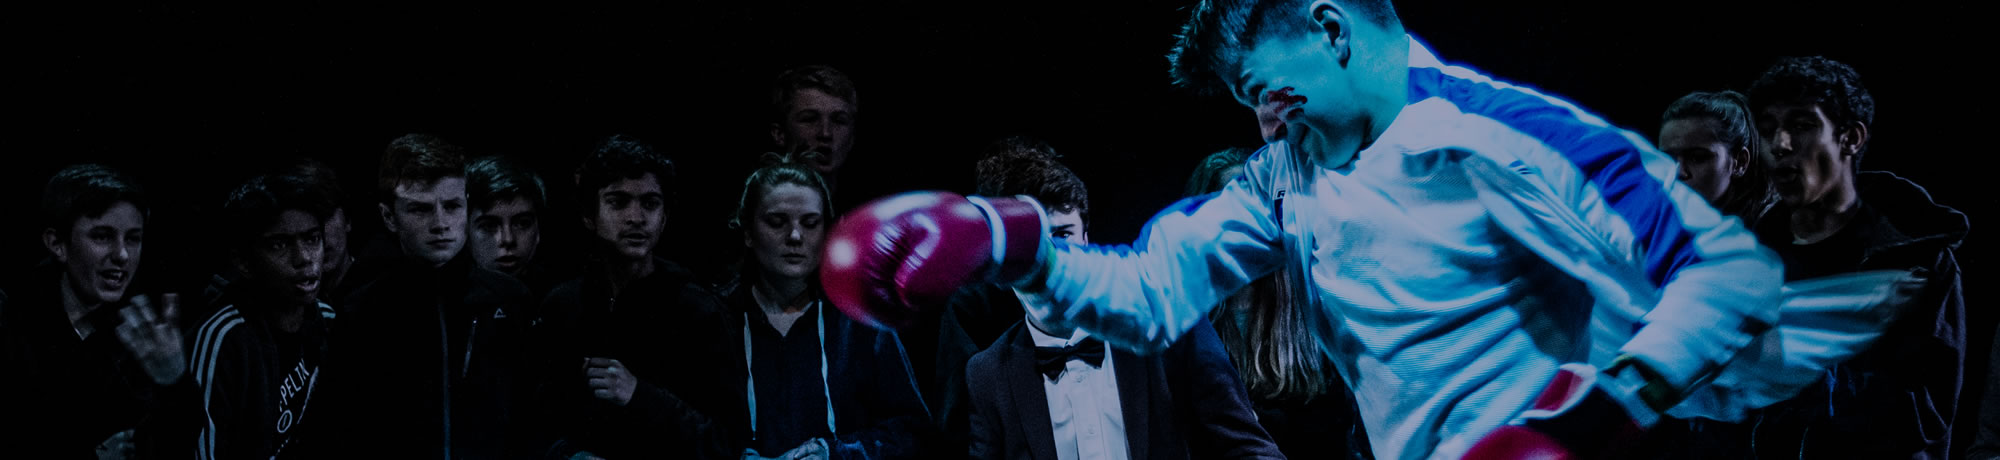 """More than any other theatre company, including the best of the professionals, Edward's Boys are in the vanguard of exploring the theatrical style of Shakespeare's contemporaries""<br /><br />PROFESSOR JOHN JOWETT, THE SHAKESPEARE INSTITUTE"